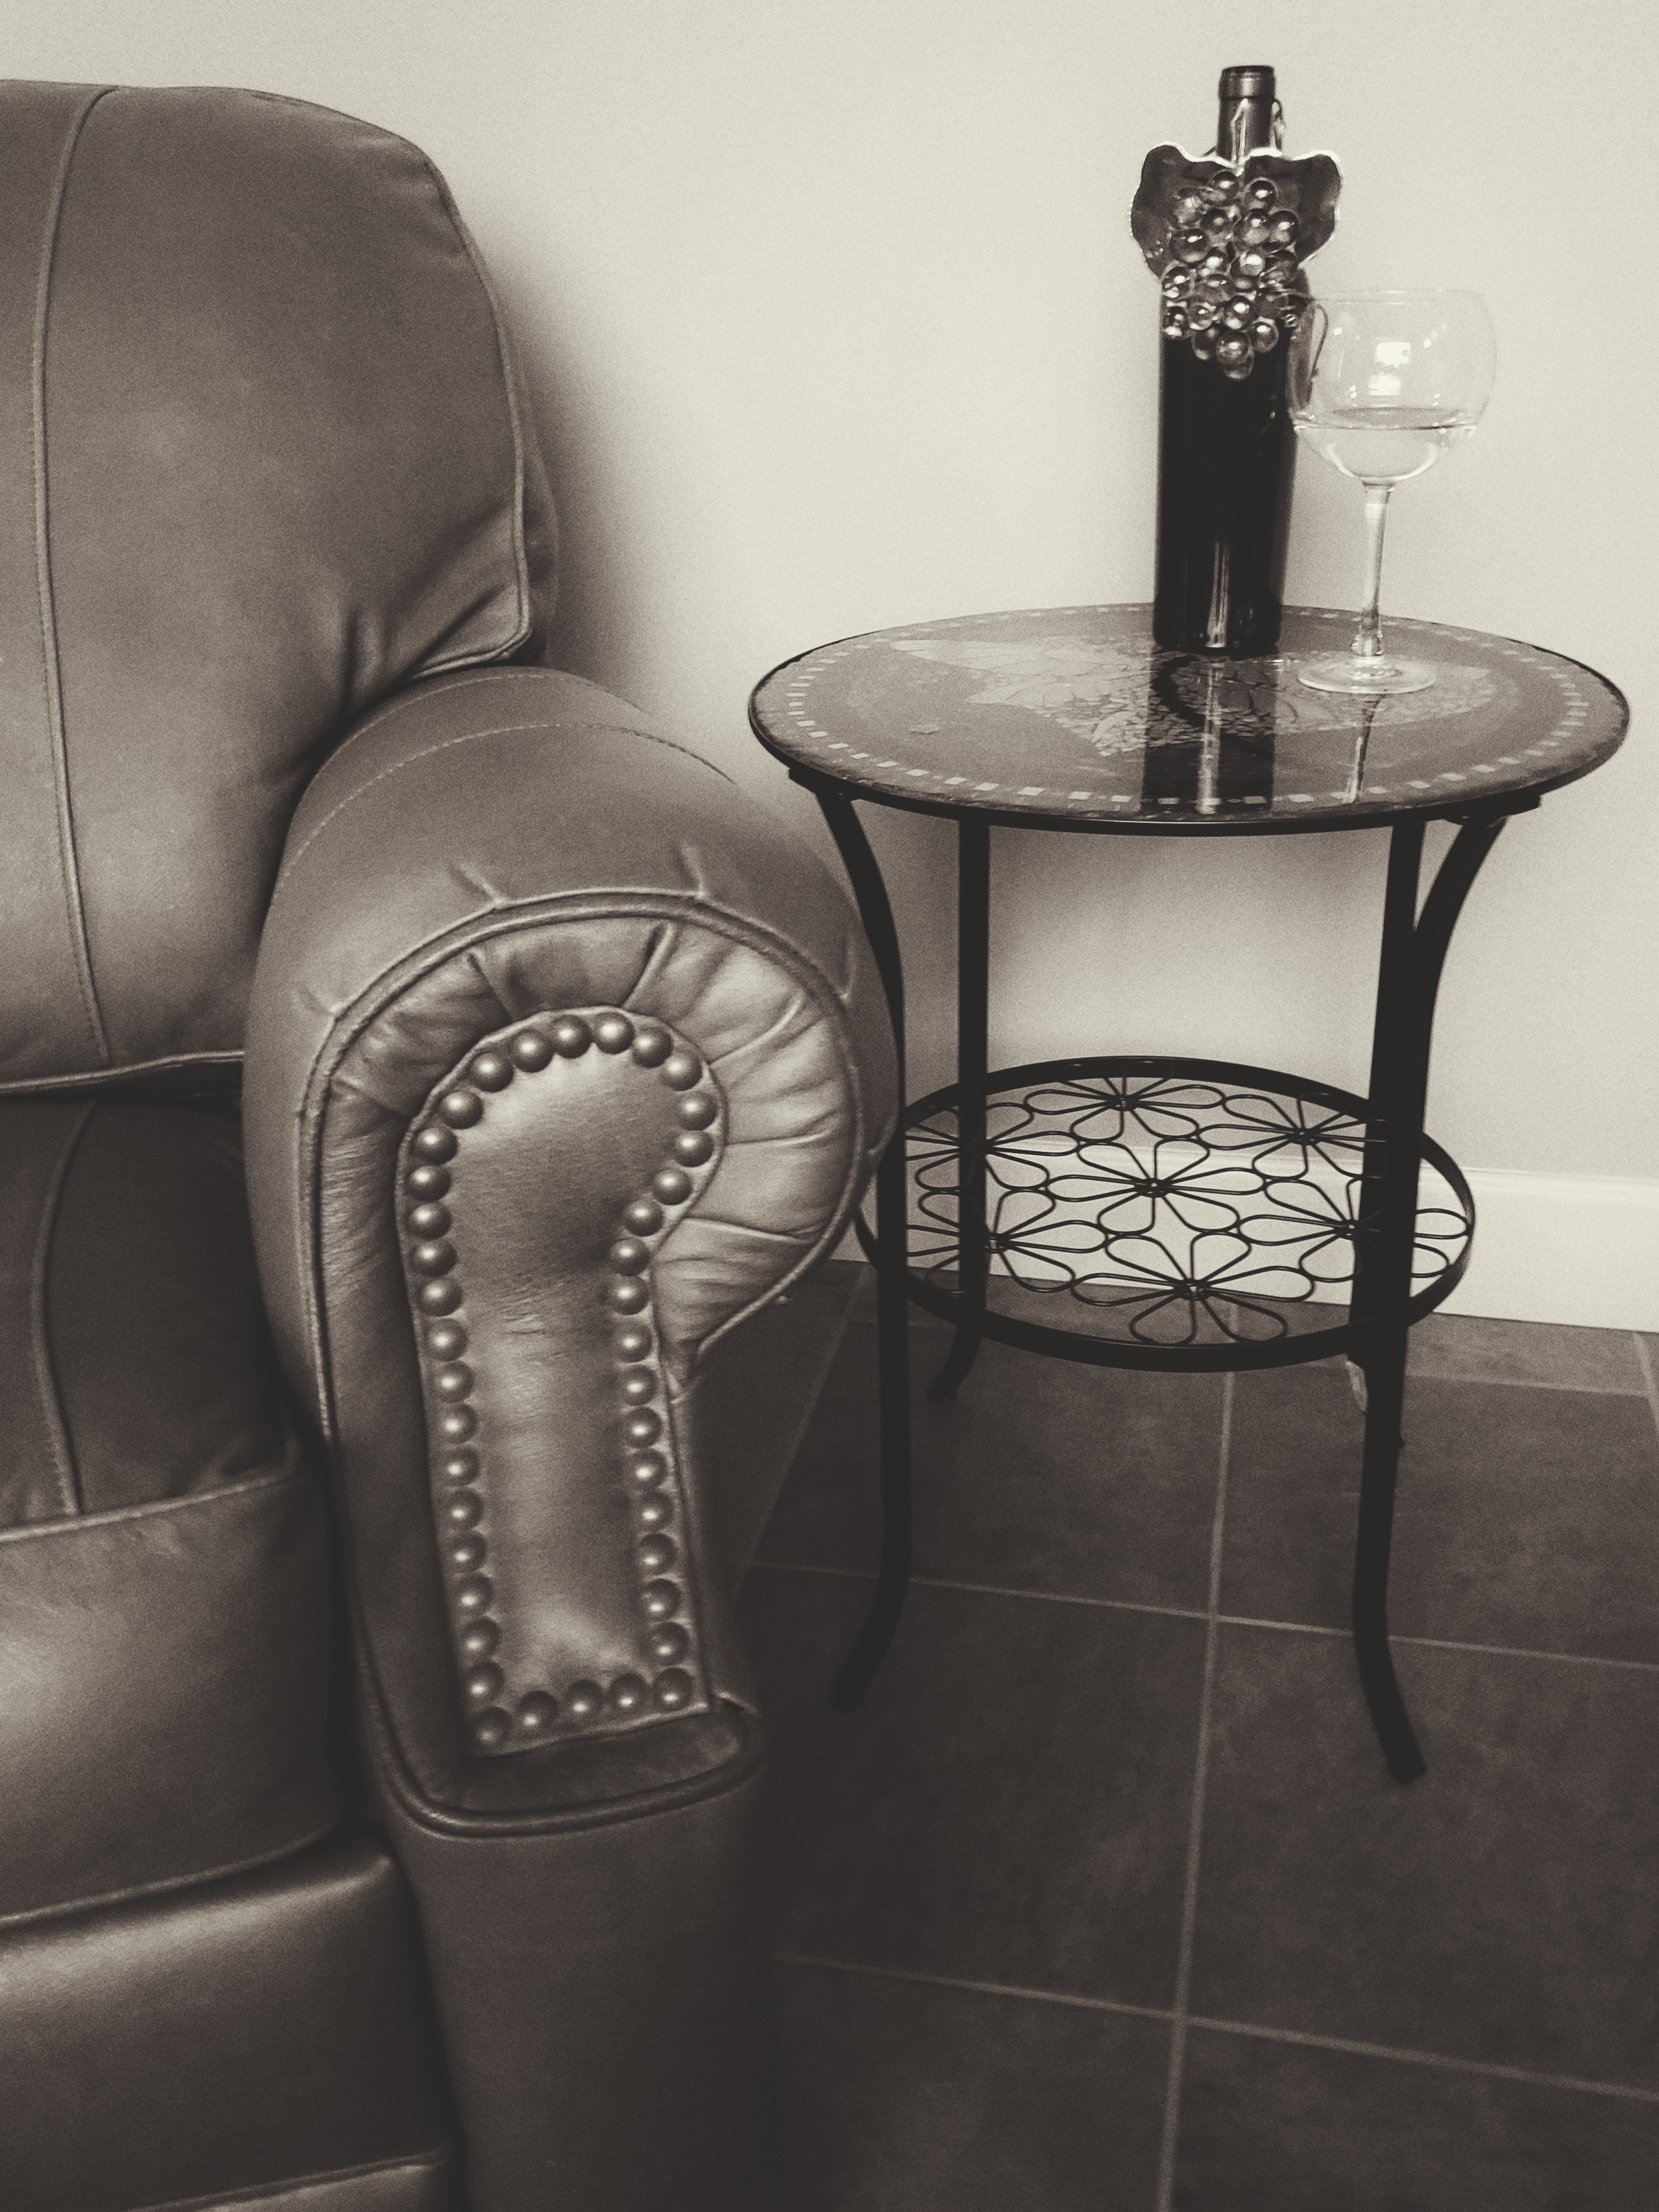 A wine bottle with a wine charm on it sits next to a glass of wine, on a glass side table, next to a leather chair.